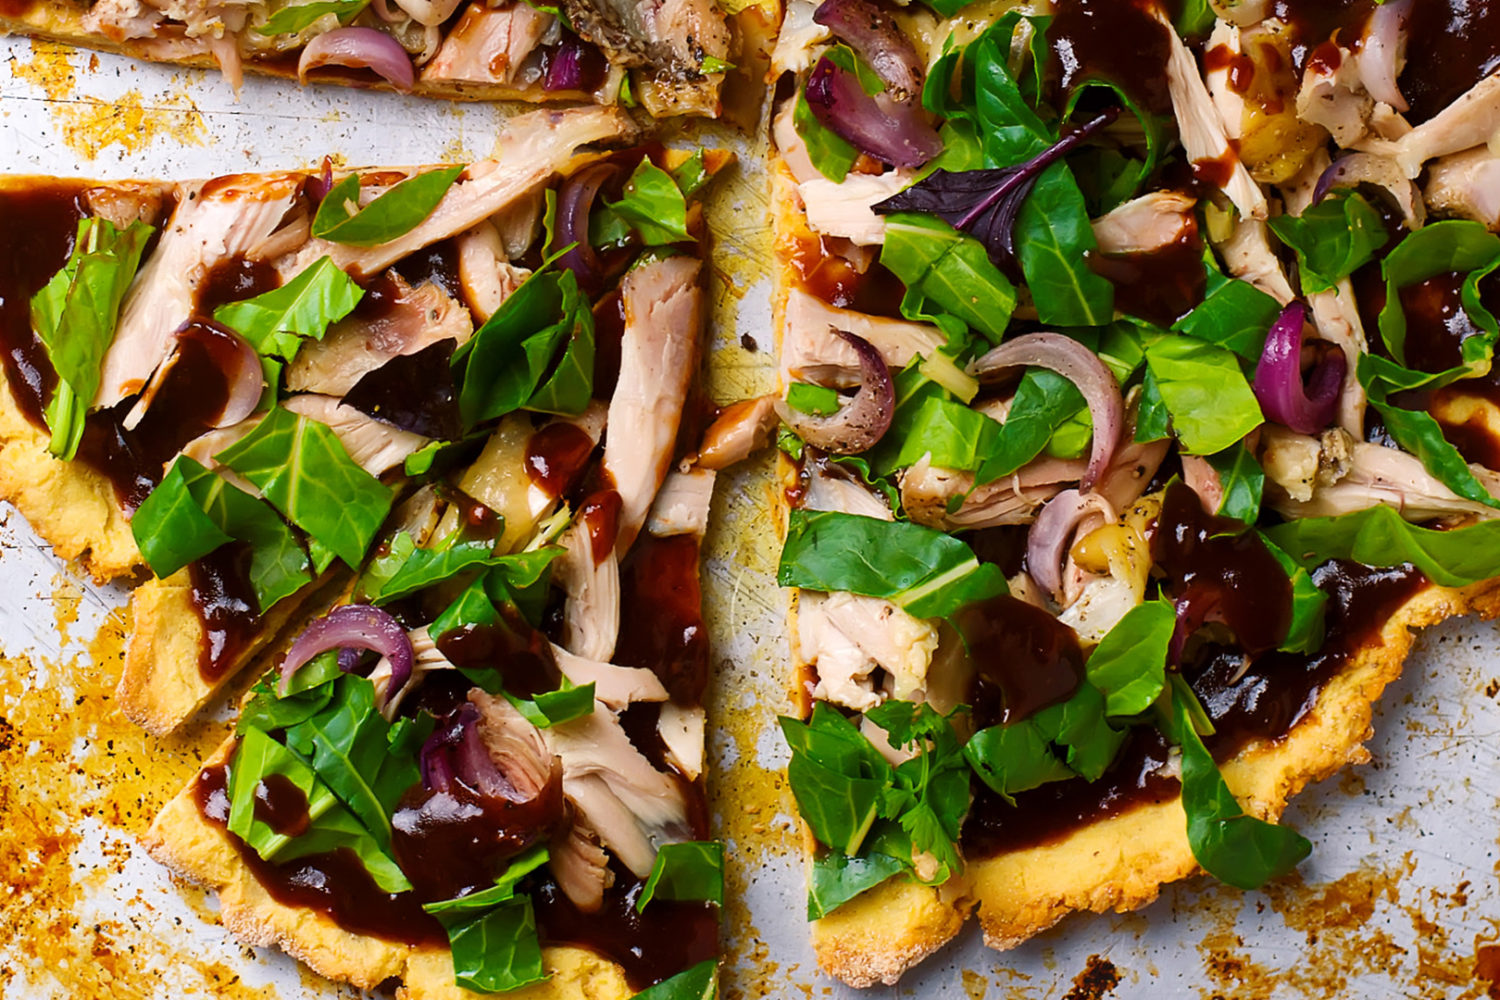 22 tantalizing photos worthy of National Pizza Day